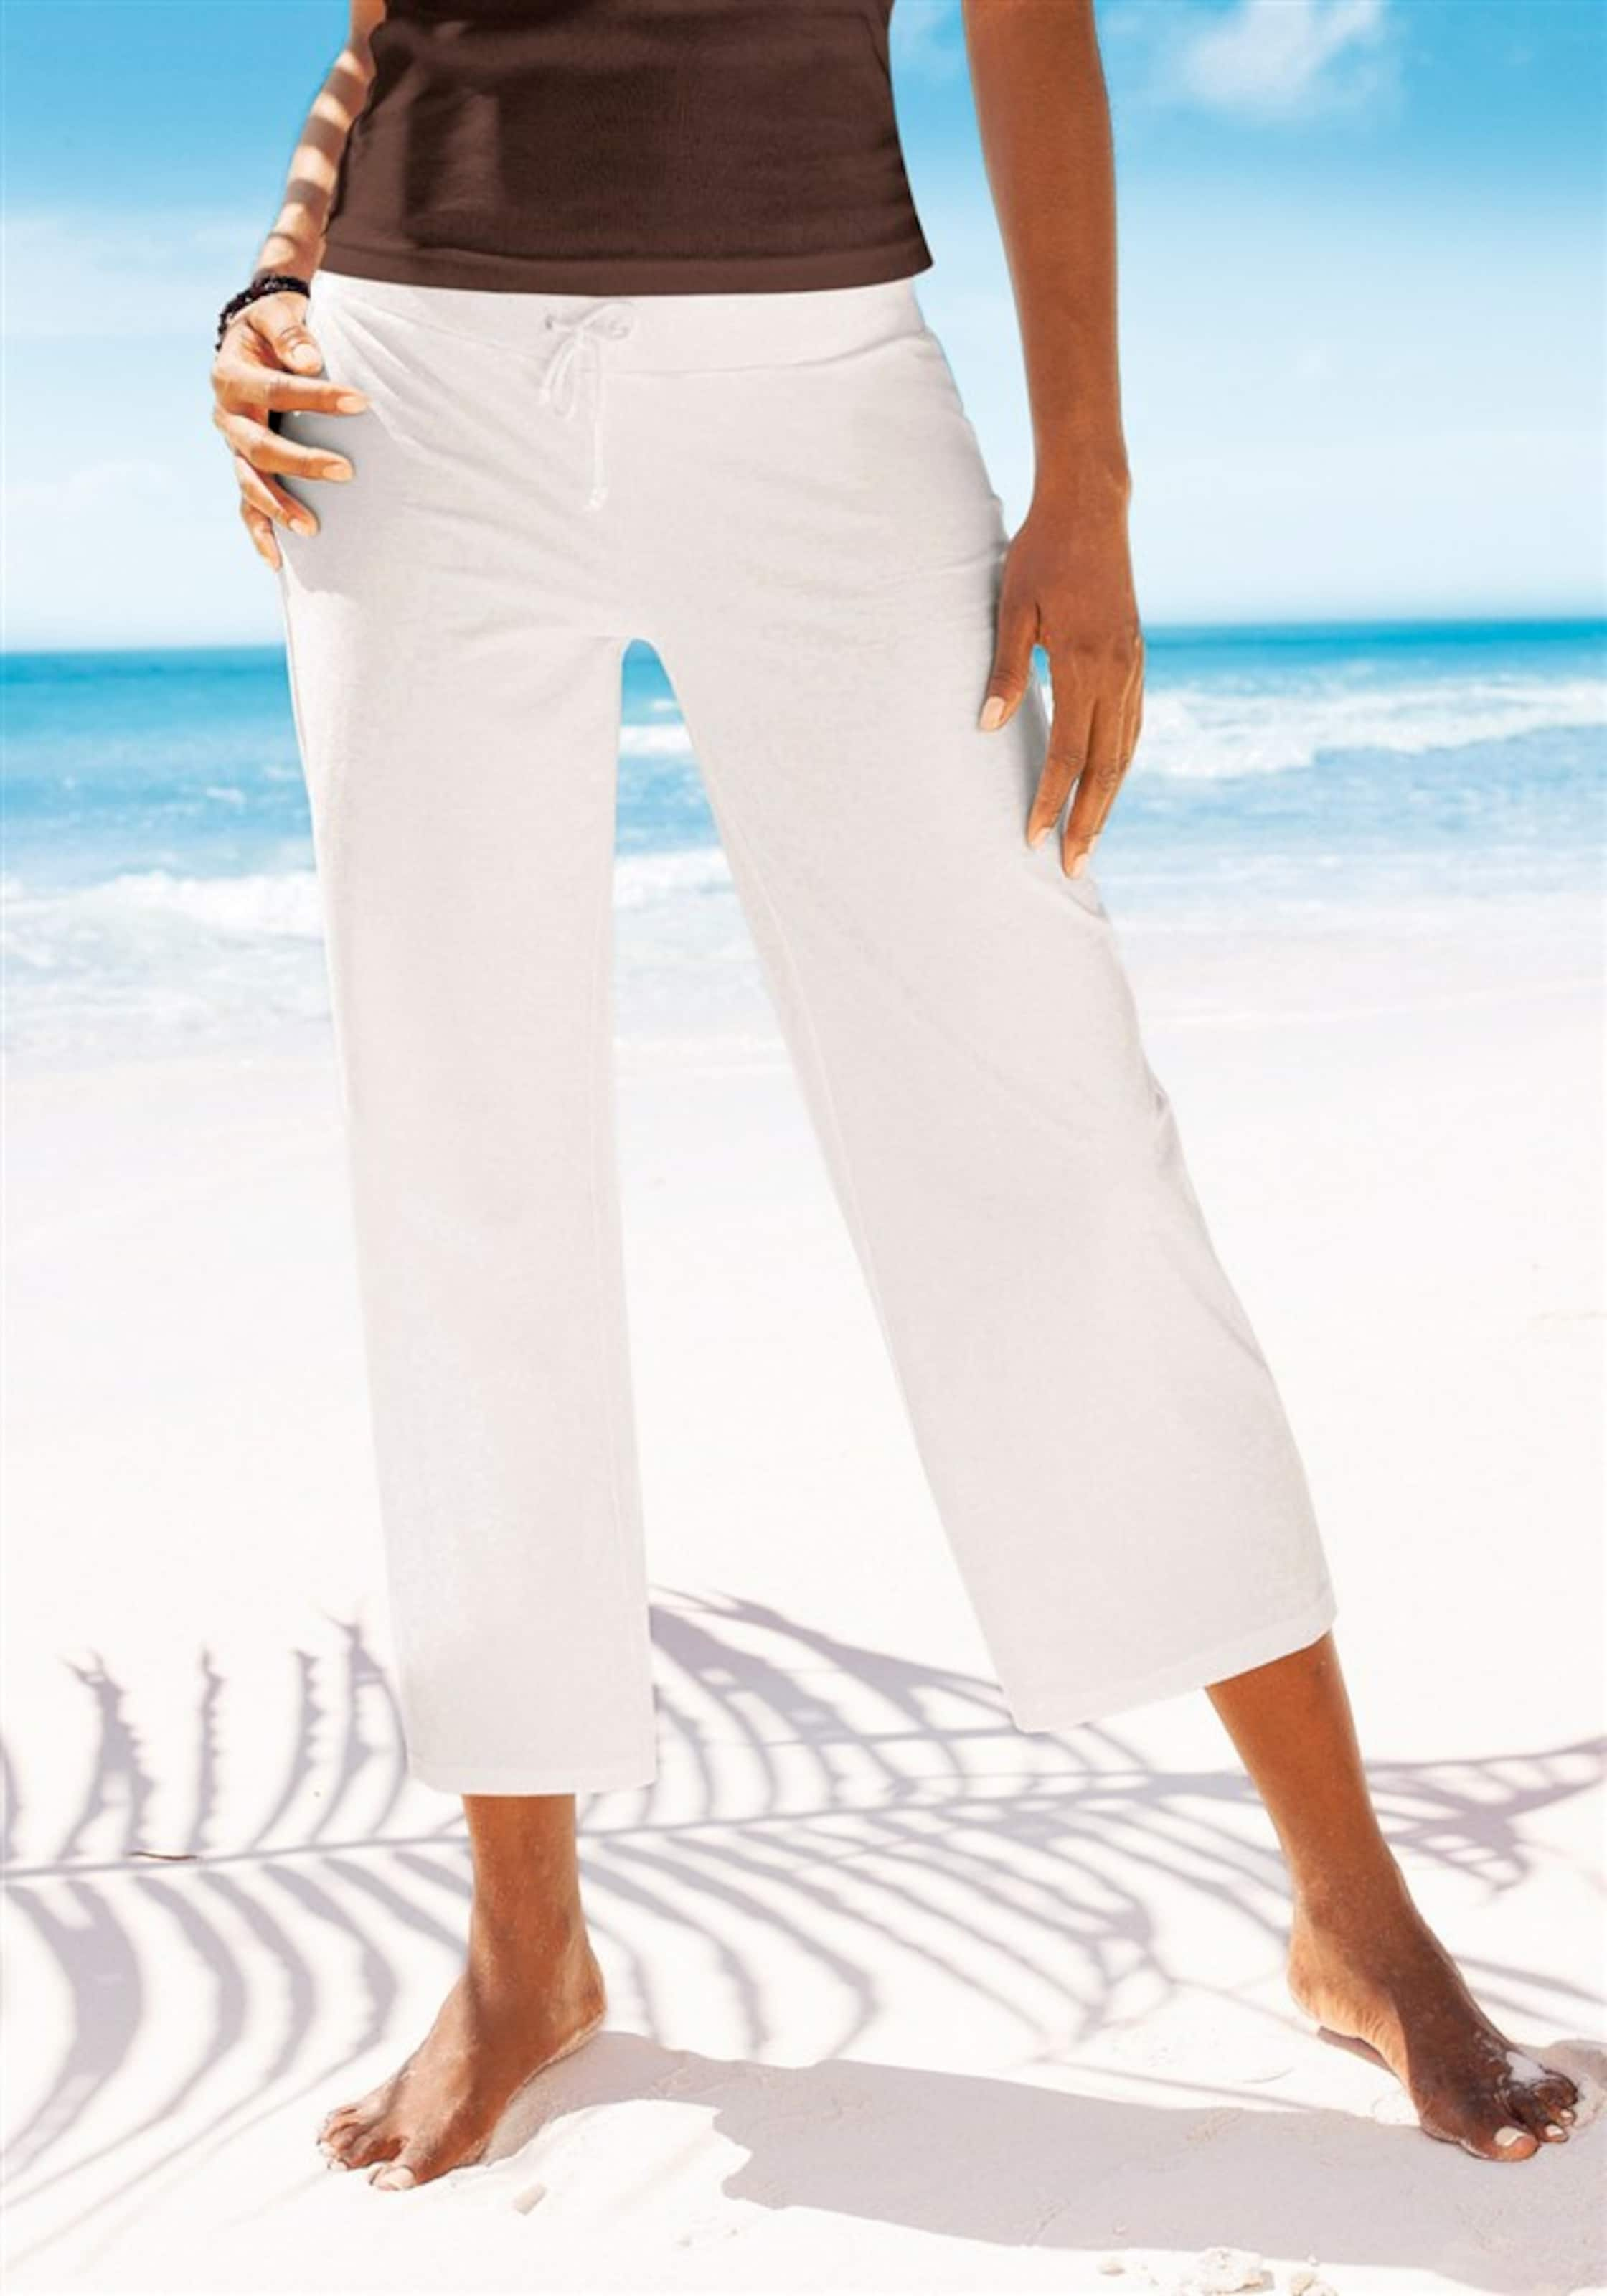 BEACH TIME 7/8-Strandhose Unter 50 Dollar Amazon Kaufen 4N2Iylnhs